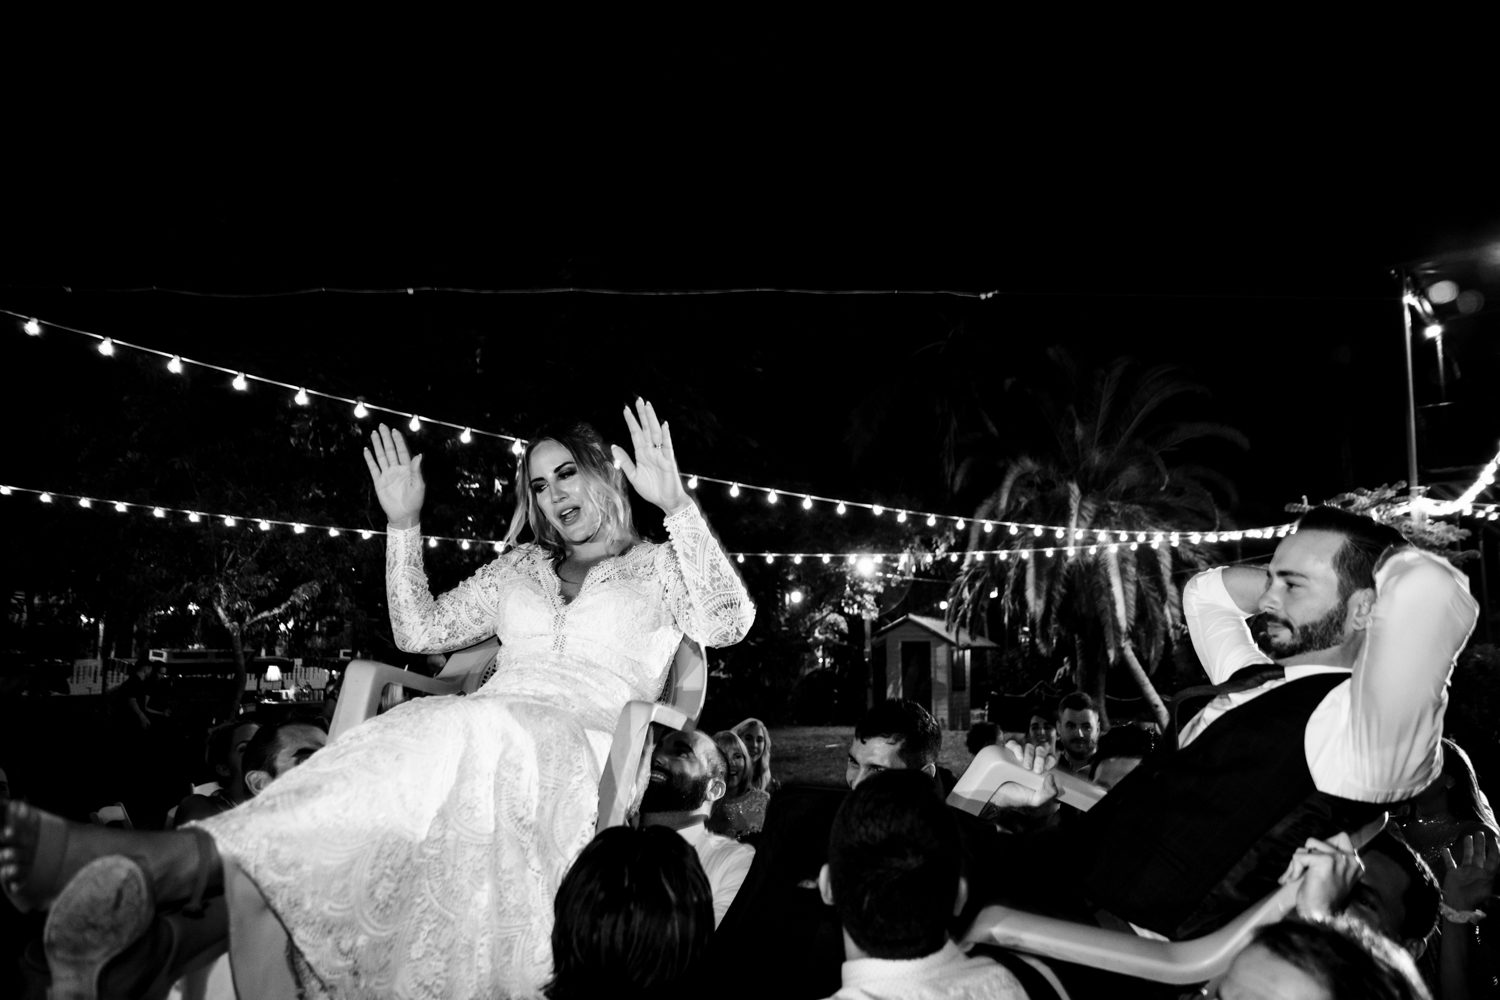 Woman being carried on a chair at her wedding reception